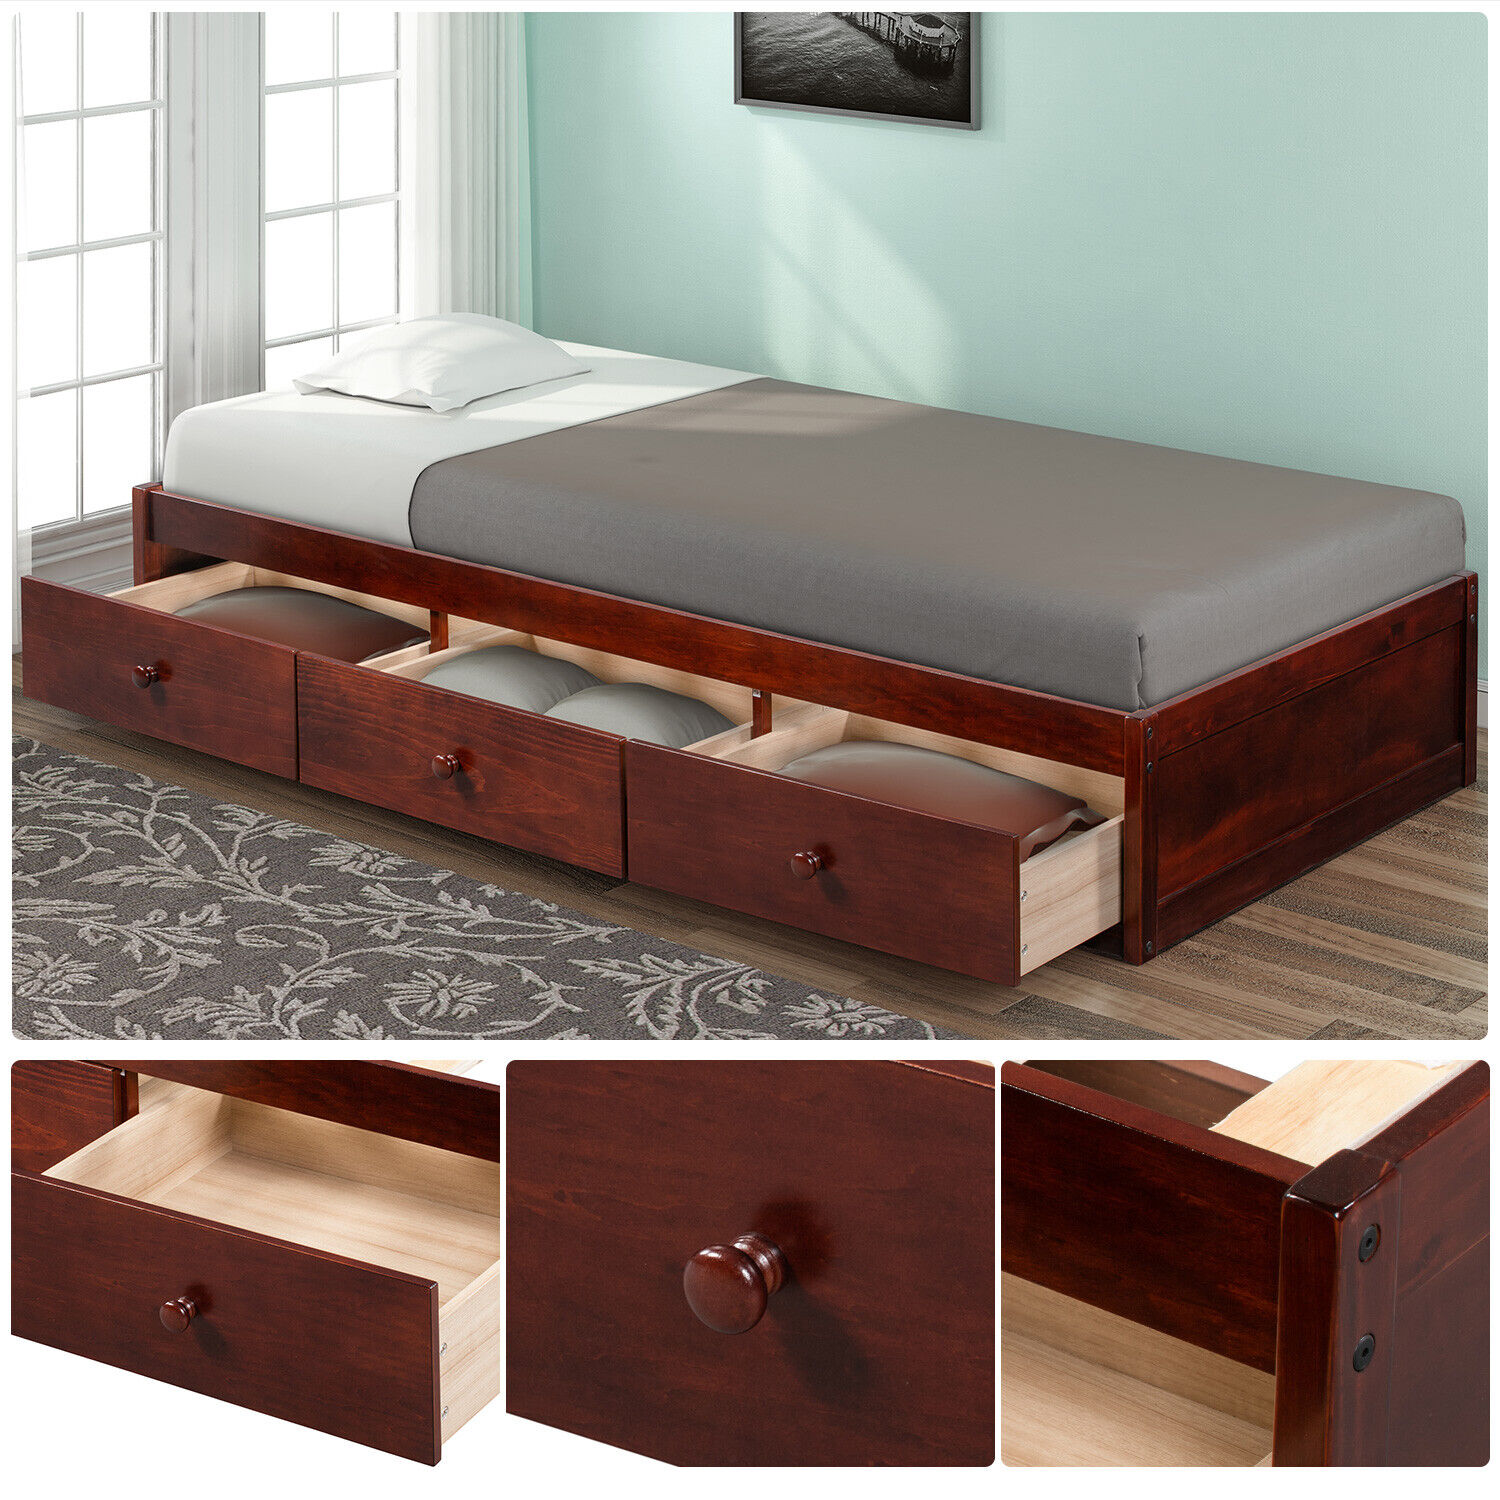 Black Twin Xl Mate S Platform Storage Bed With 3 Drawers For Sale Online Ebay